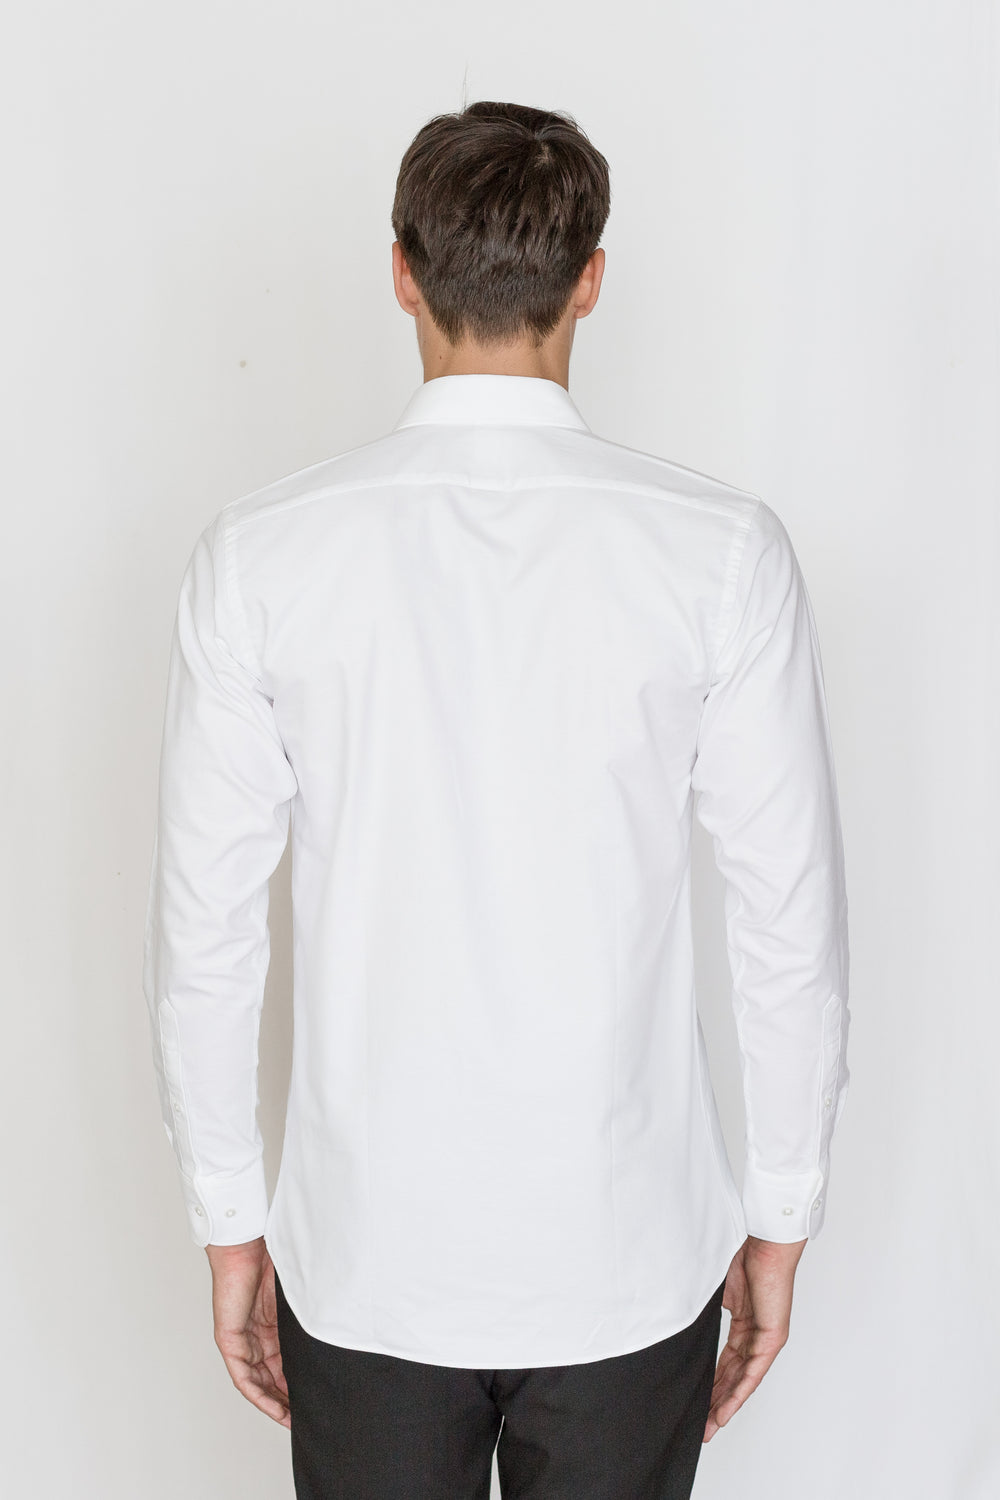 Mason Ward Amsterdam  White Heavy Oxford Fashion Fit/ Regular Cuff Shirt